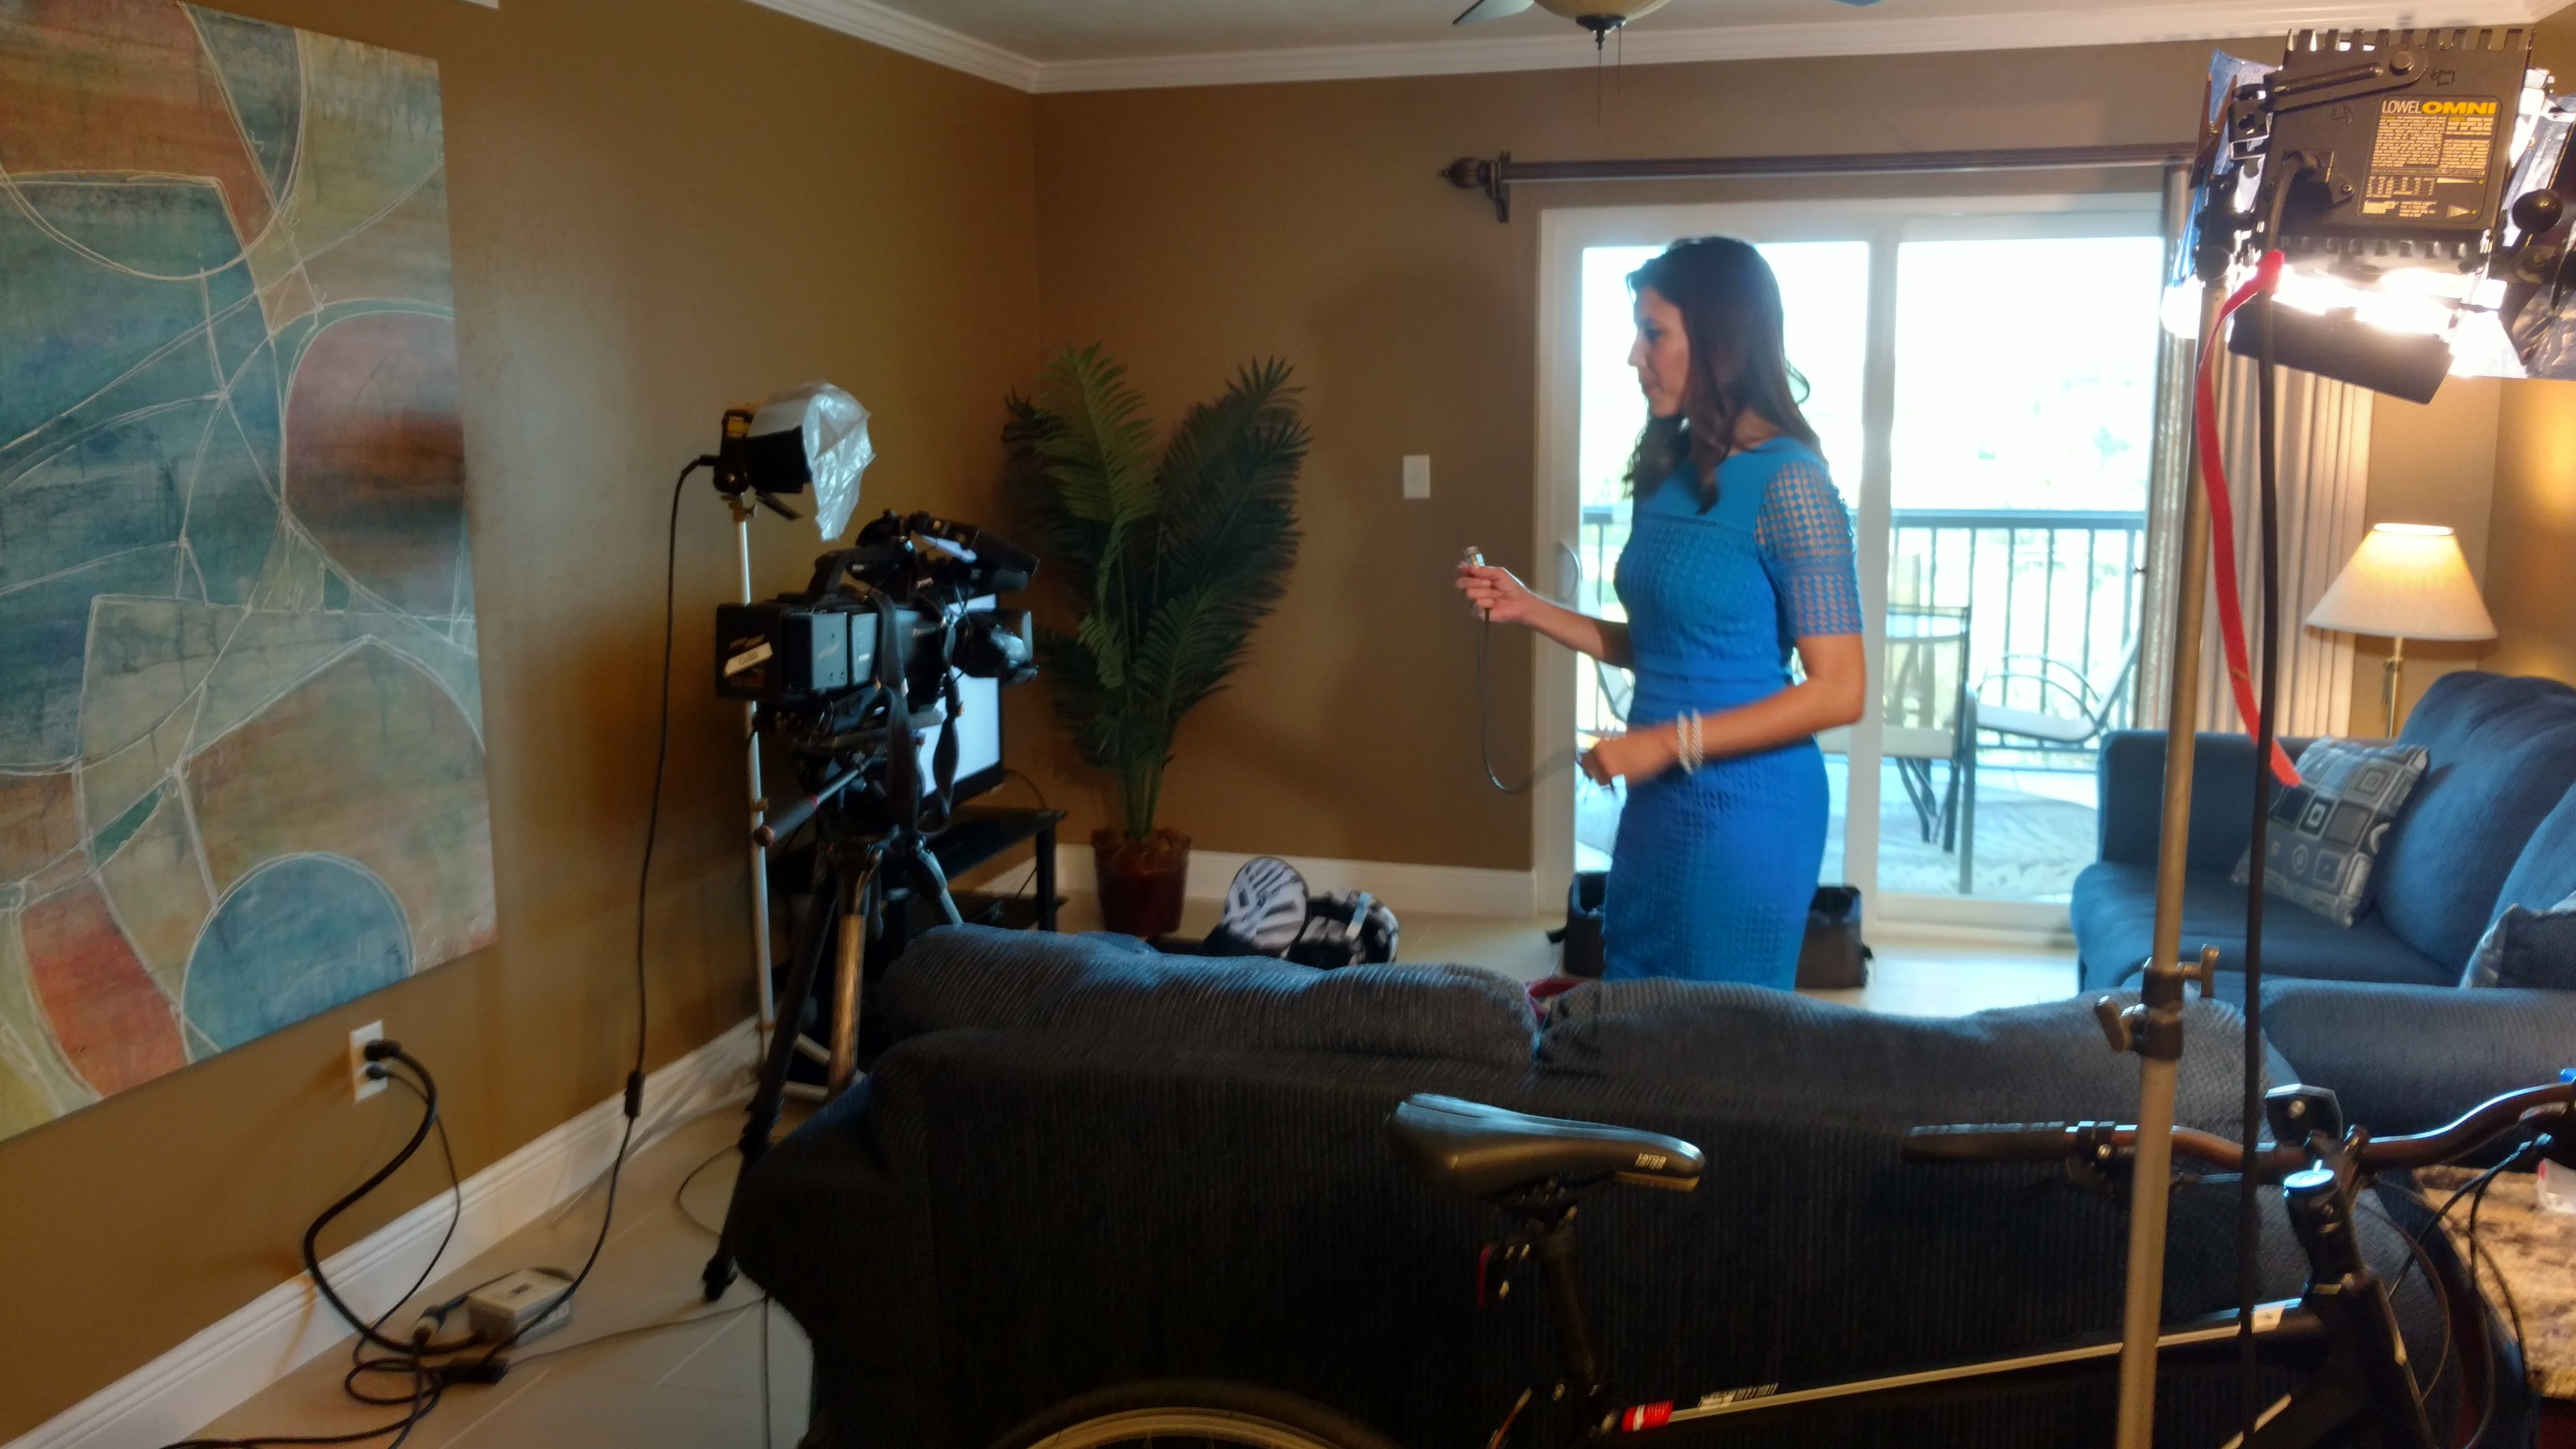 Wink News anchor and reporter Lindsey Sablan preparing for interview in the home of national child guardian and SubscriberWise president David Howe (Photo: Business Wire)